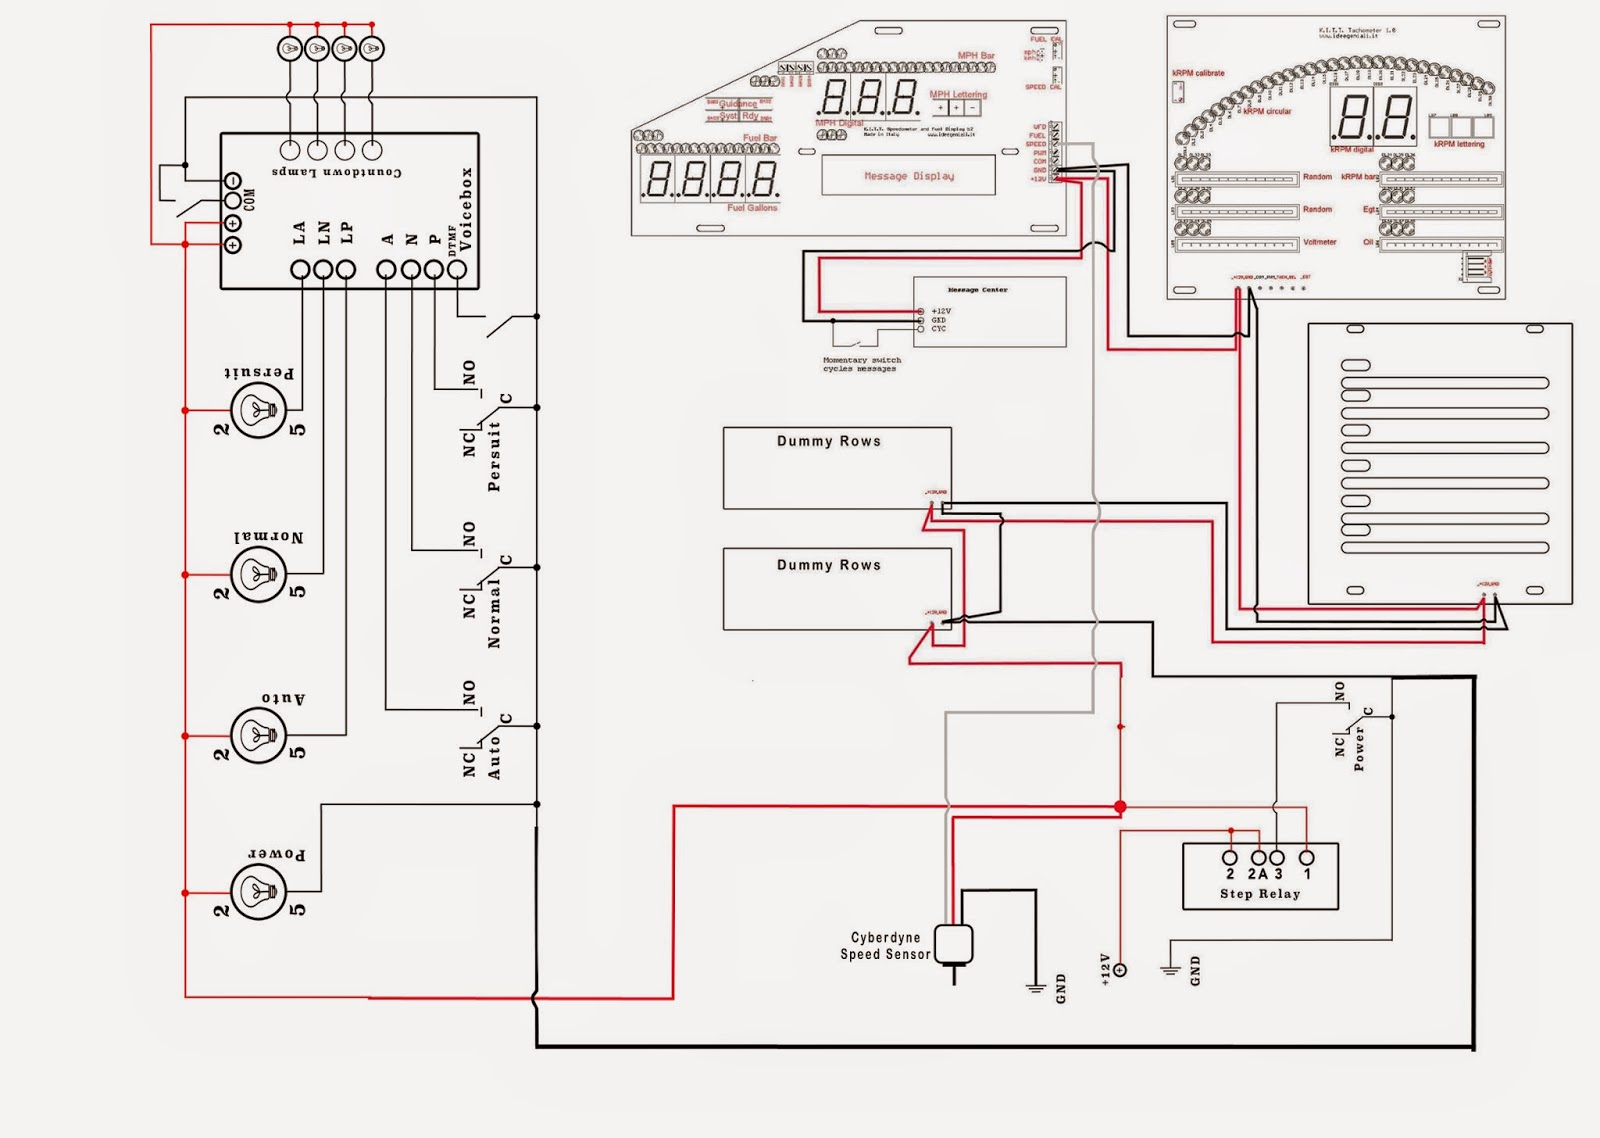 Enchanting 1980s Chevy Spectrum Wiring Diagrams Pictures ...